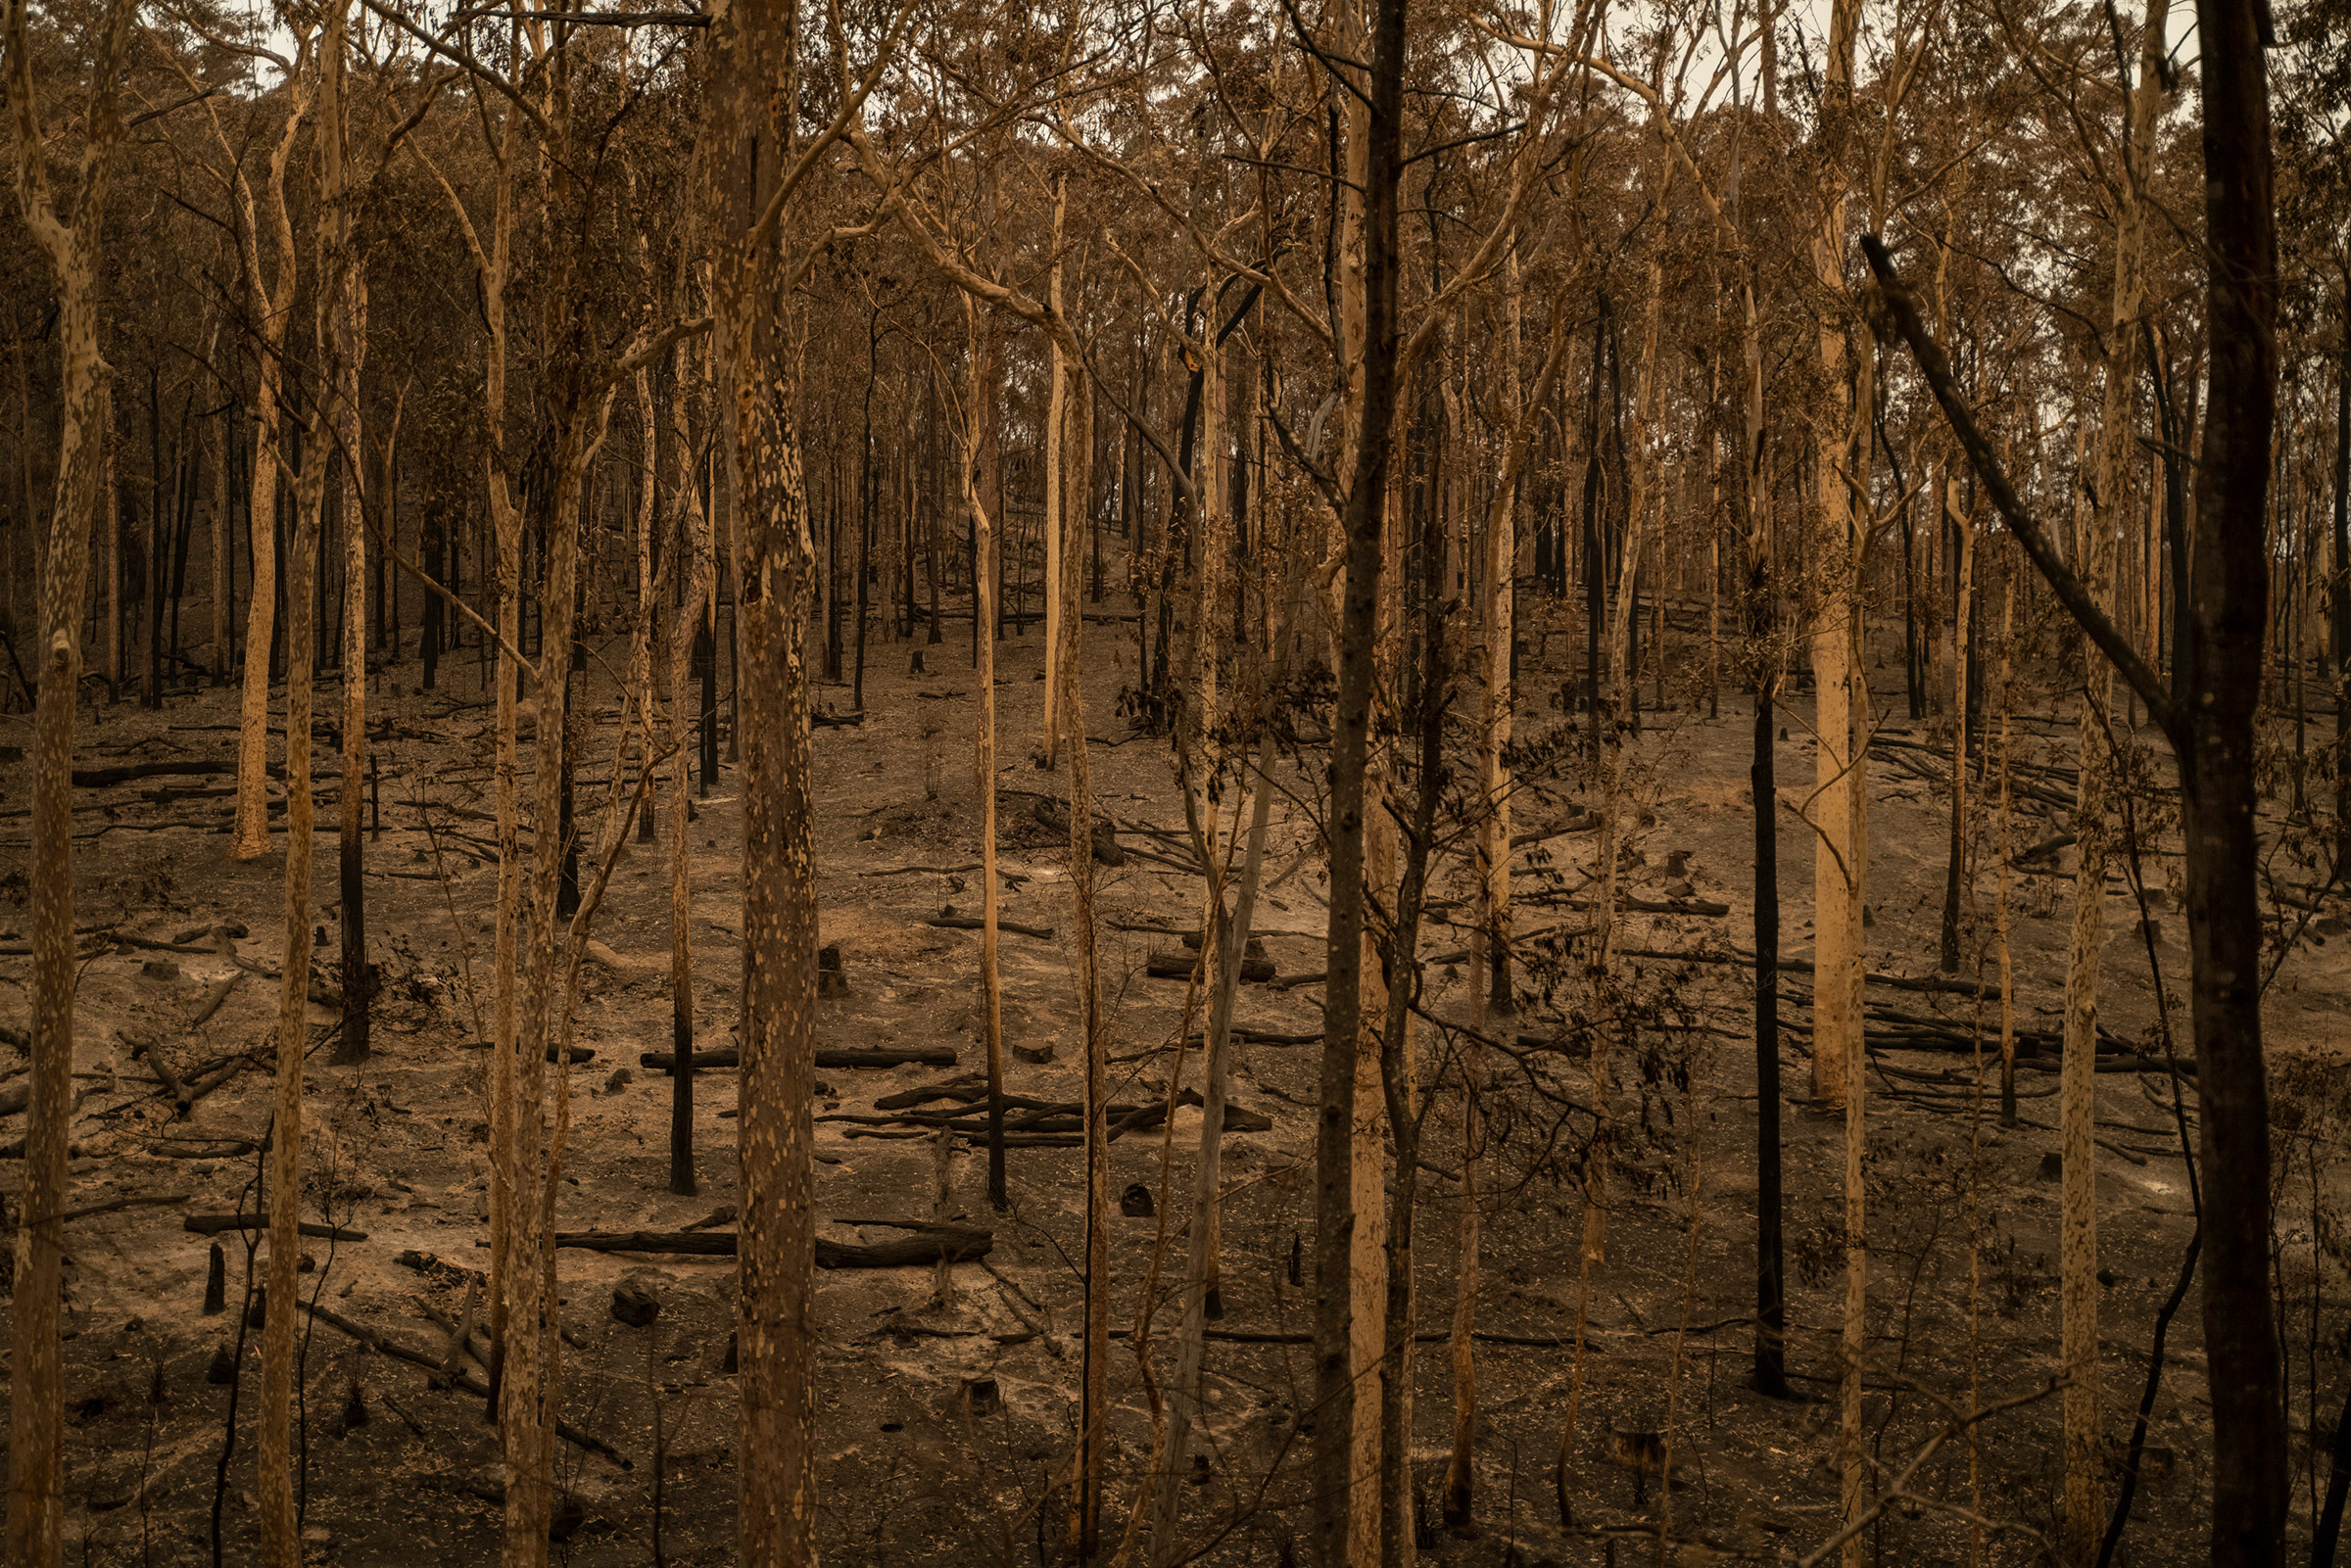 Burnt trees in Mogo State Forest in New South Wales, Australia, on Jan. 5